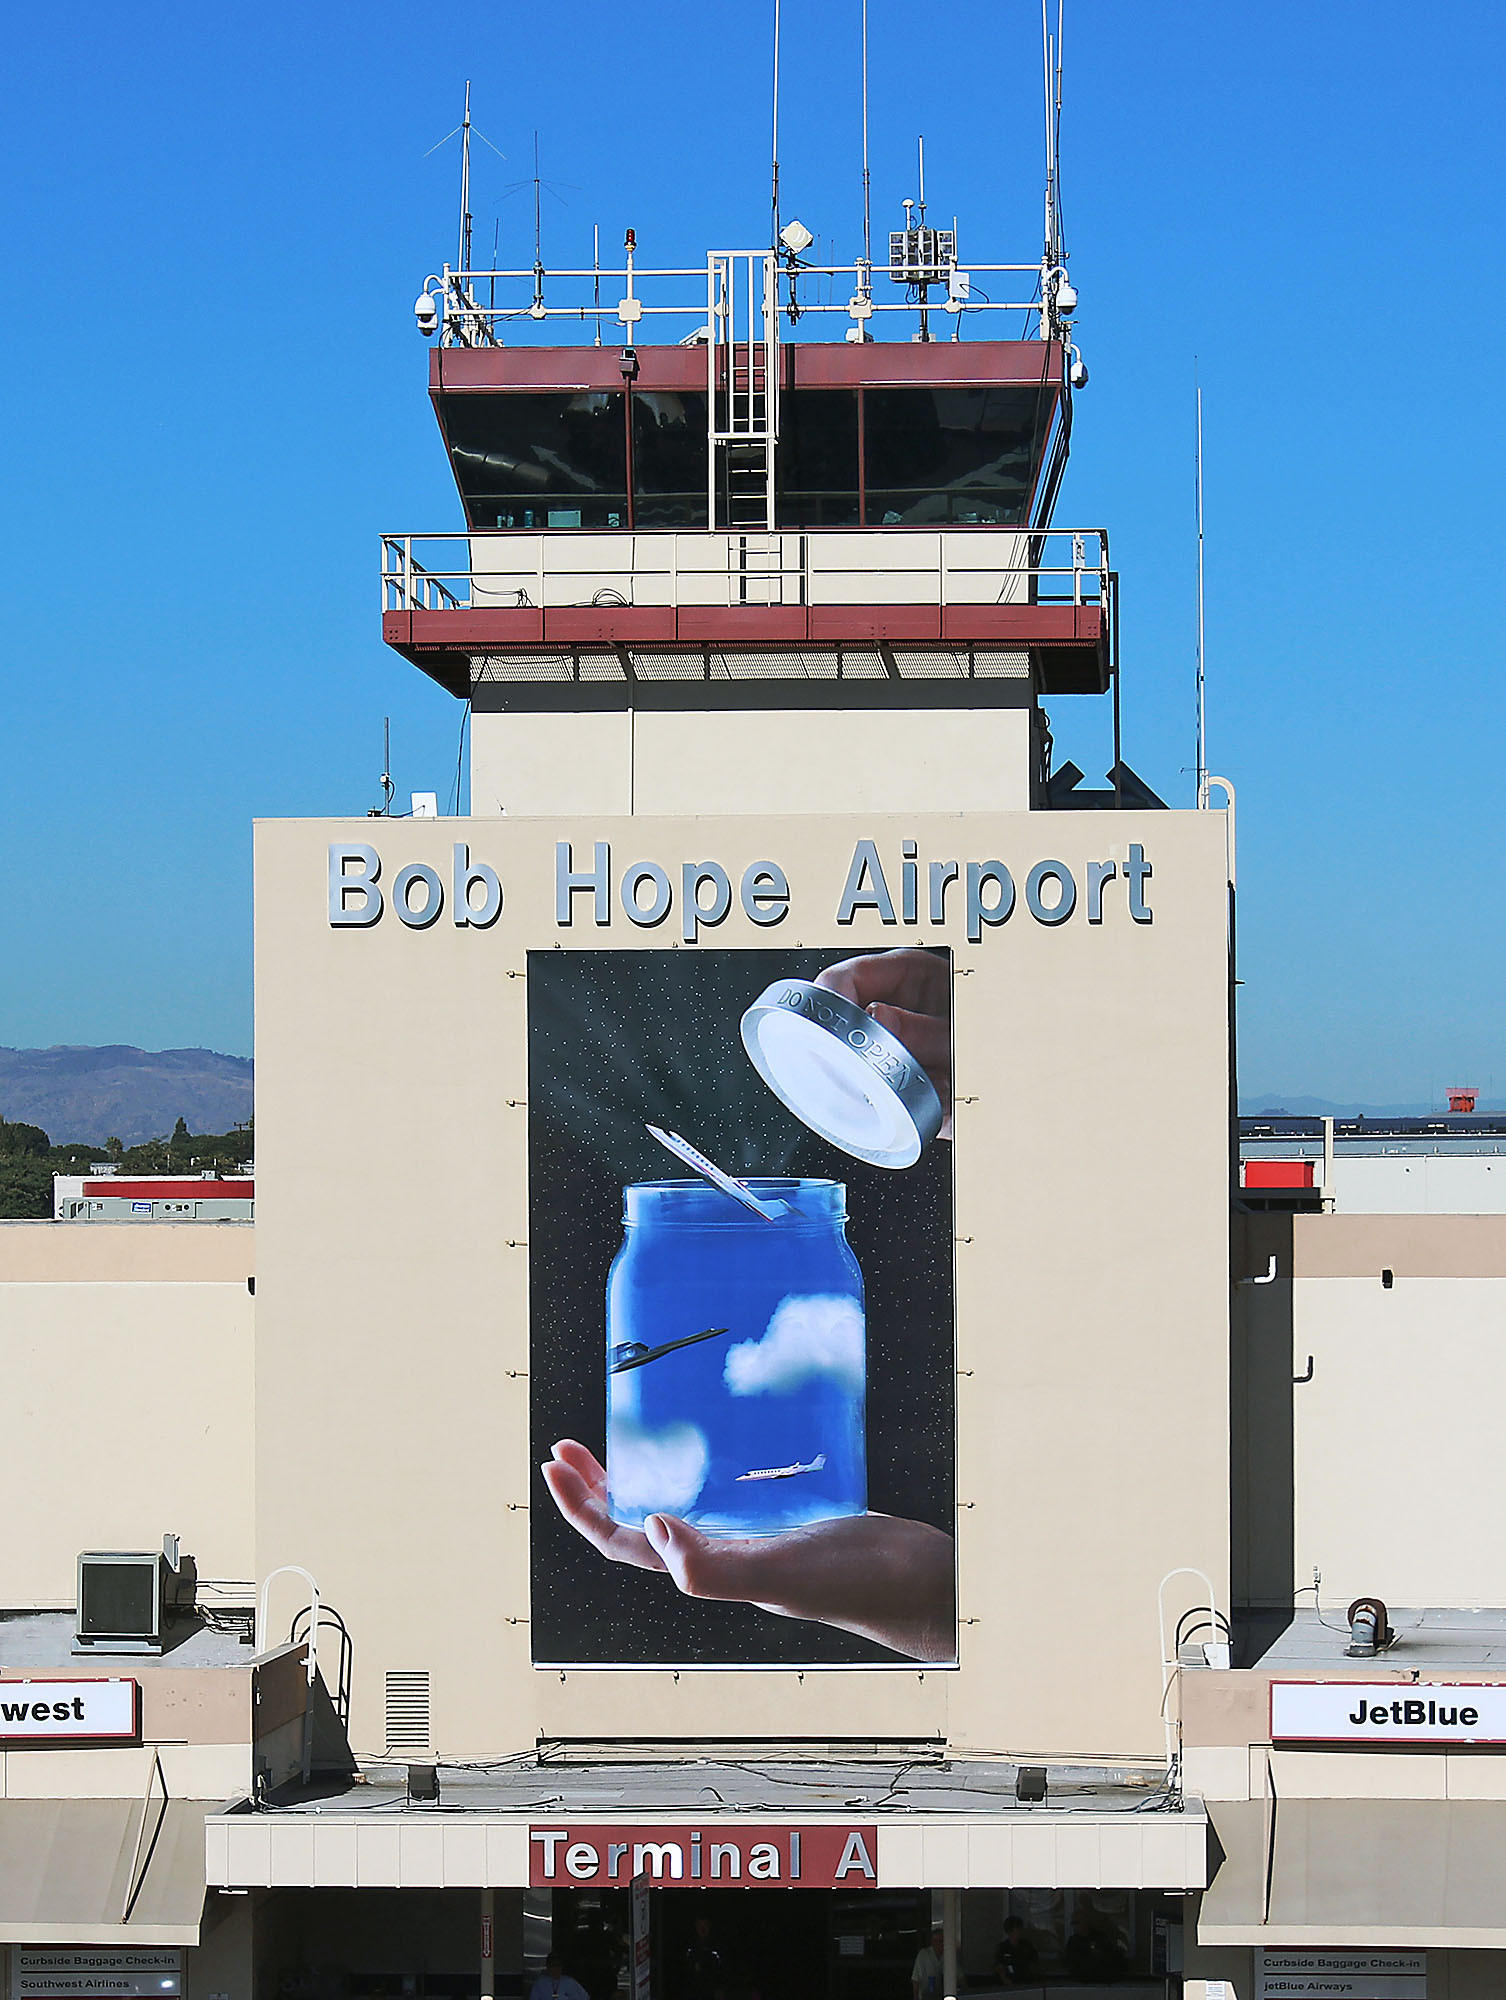 The first place art piece featured at the Bob Hope Airport traffic control tower was designed by Burroughs High School arts students Jordan Lopez, Melissa Alfaro, Shushanik Hovakimyan, Rachel Verharst, Daniel Kerkotchian, and Breanna French under the instruction of John Burroughs High School teacher Bonnie Burrow